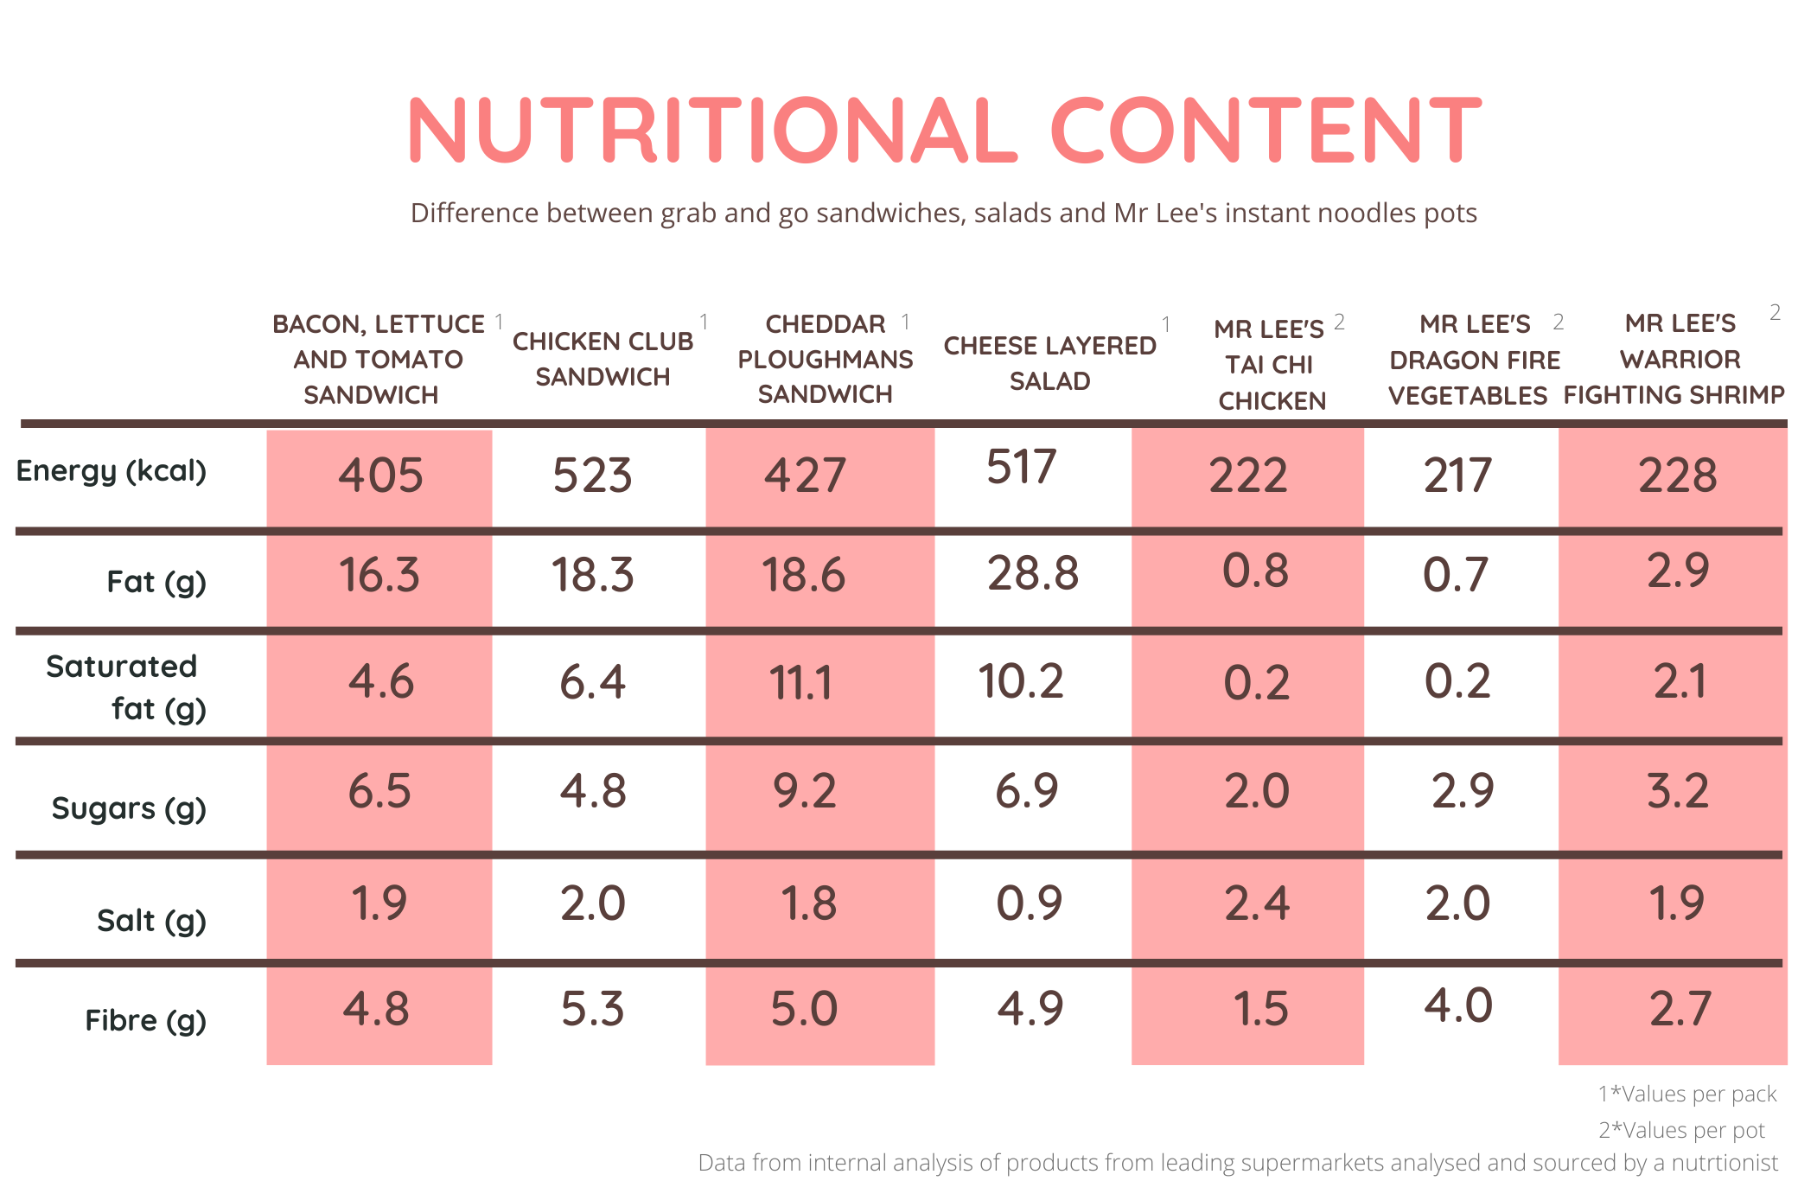 Nutritional value comparison between sandwiches, salads and instant noodles